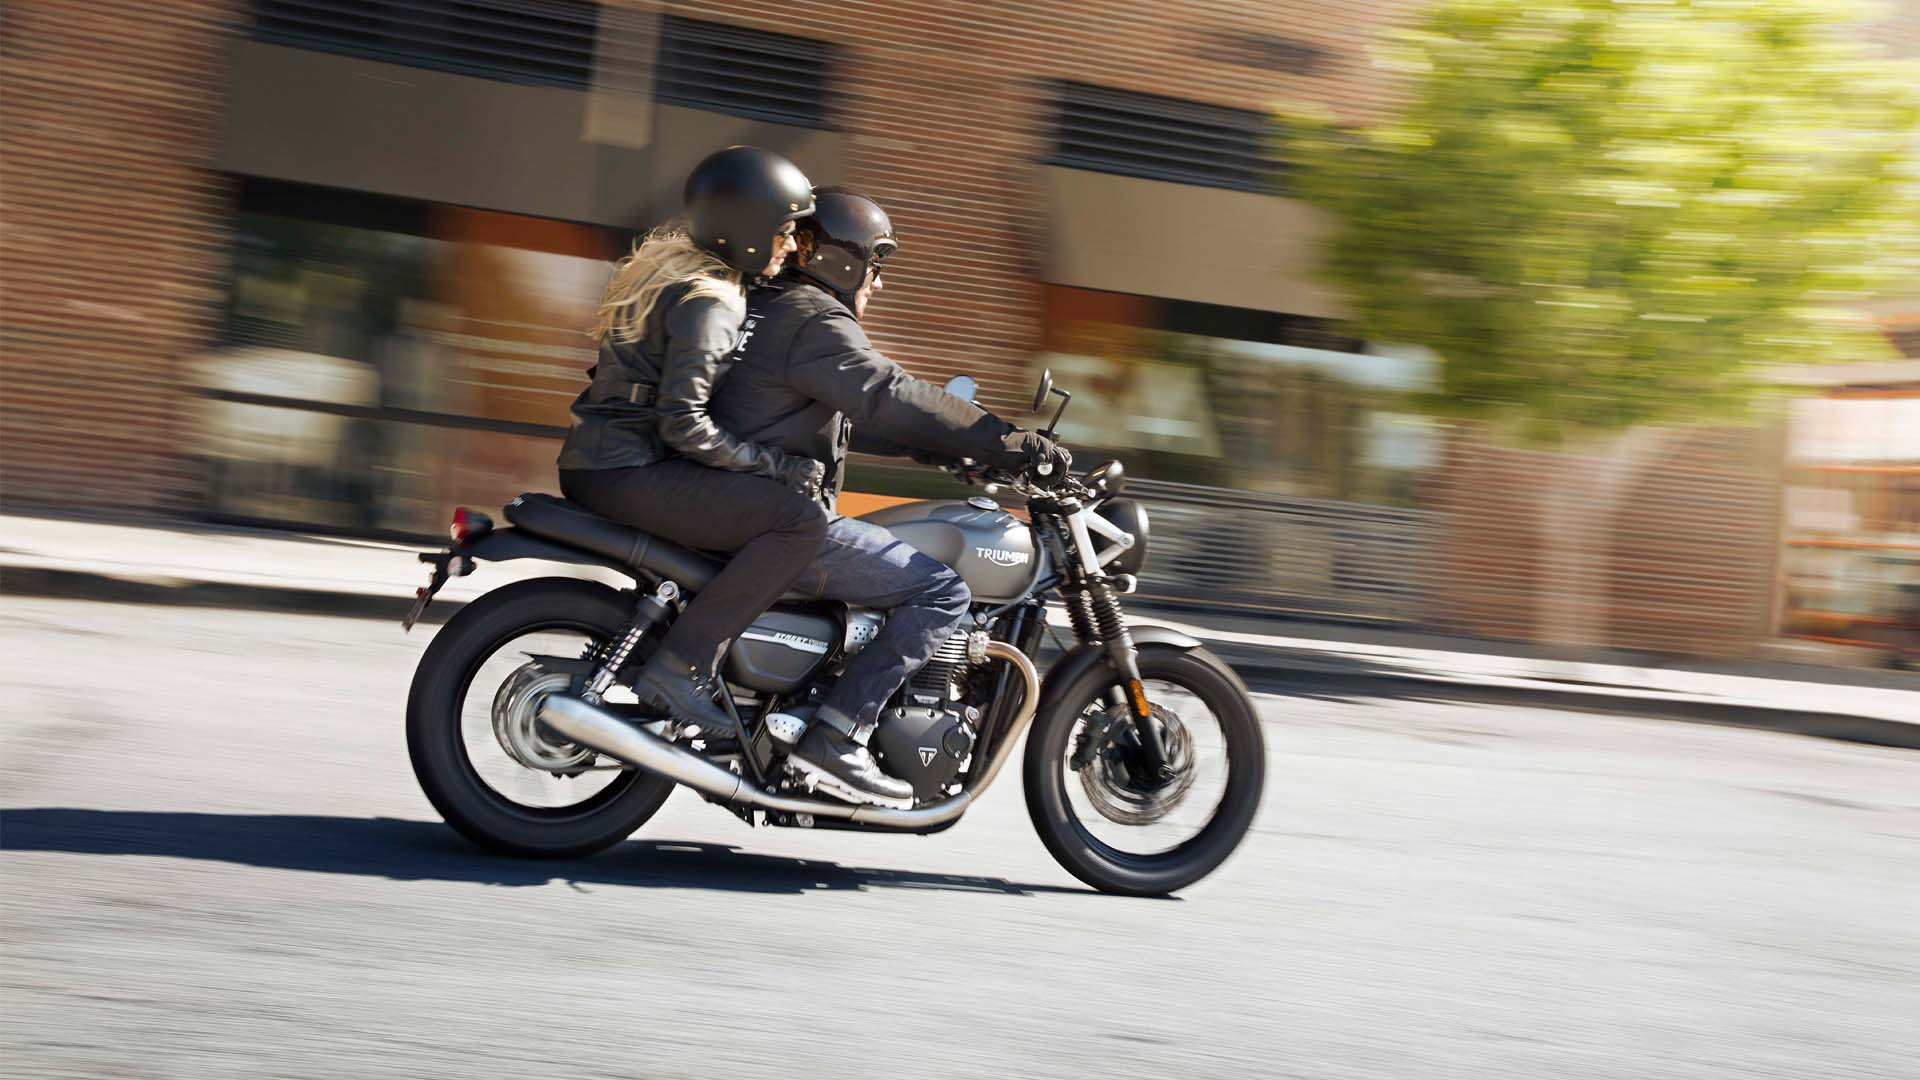 Rider and pillion on a Triumph Street Twin riding through urban setting